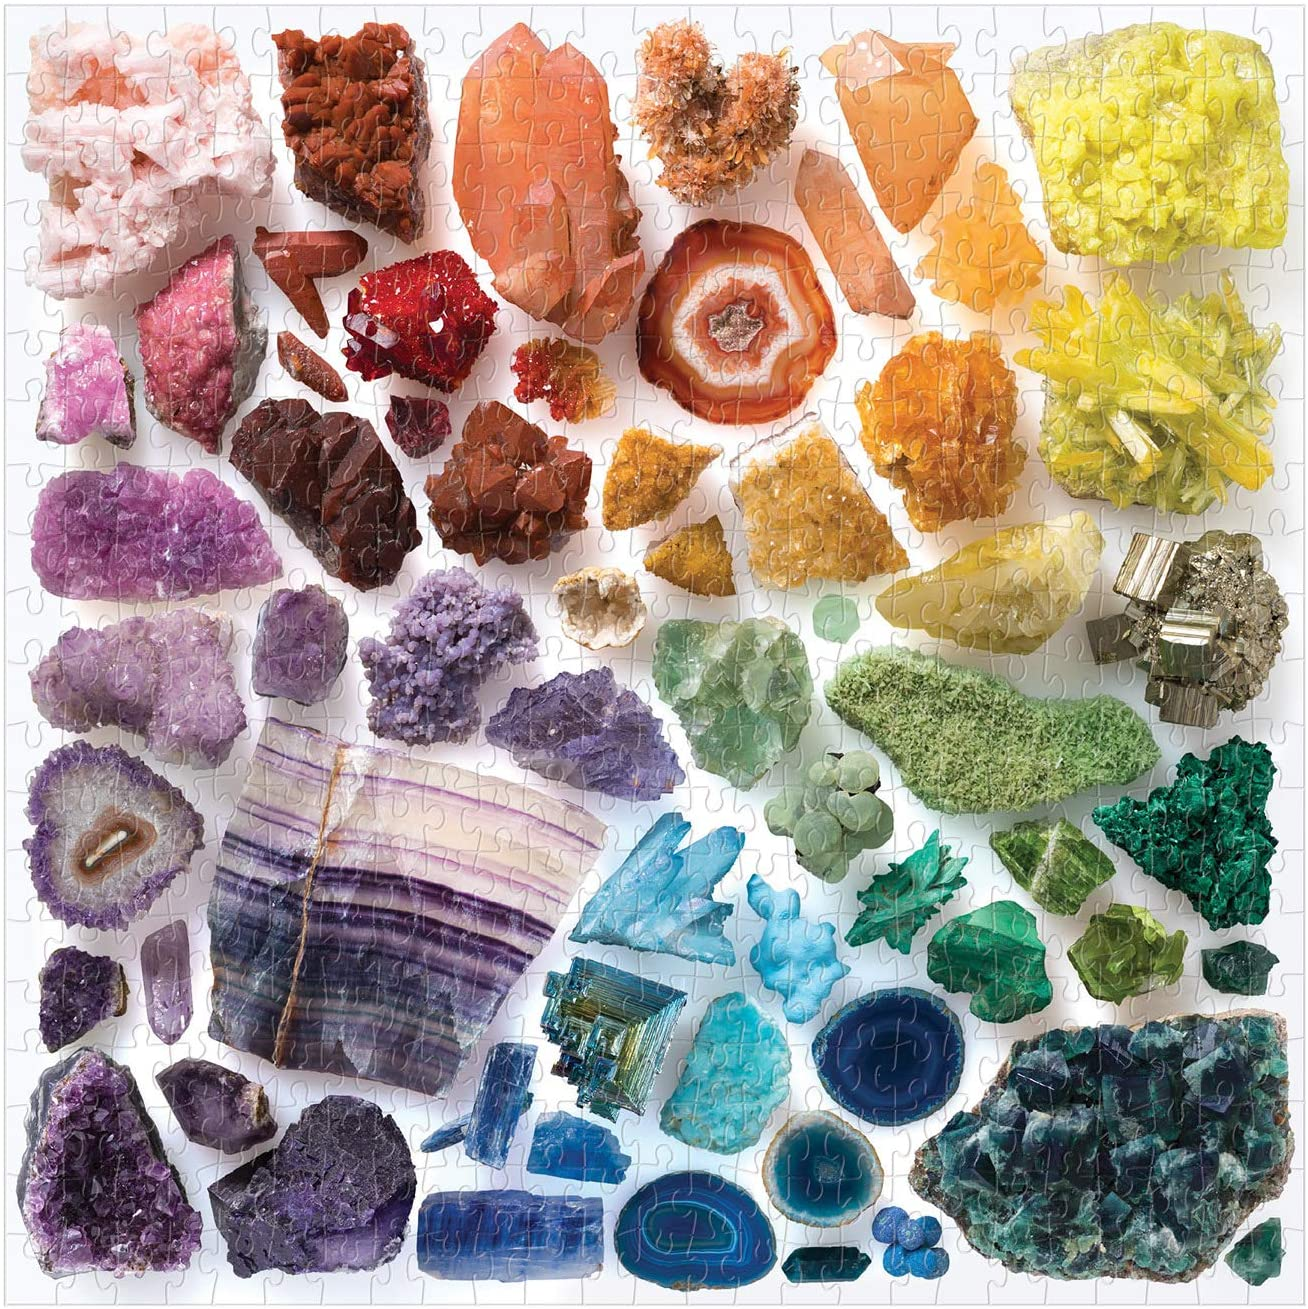 rainbow-crystals-500-piece-puzzle-Second-Alternate-image